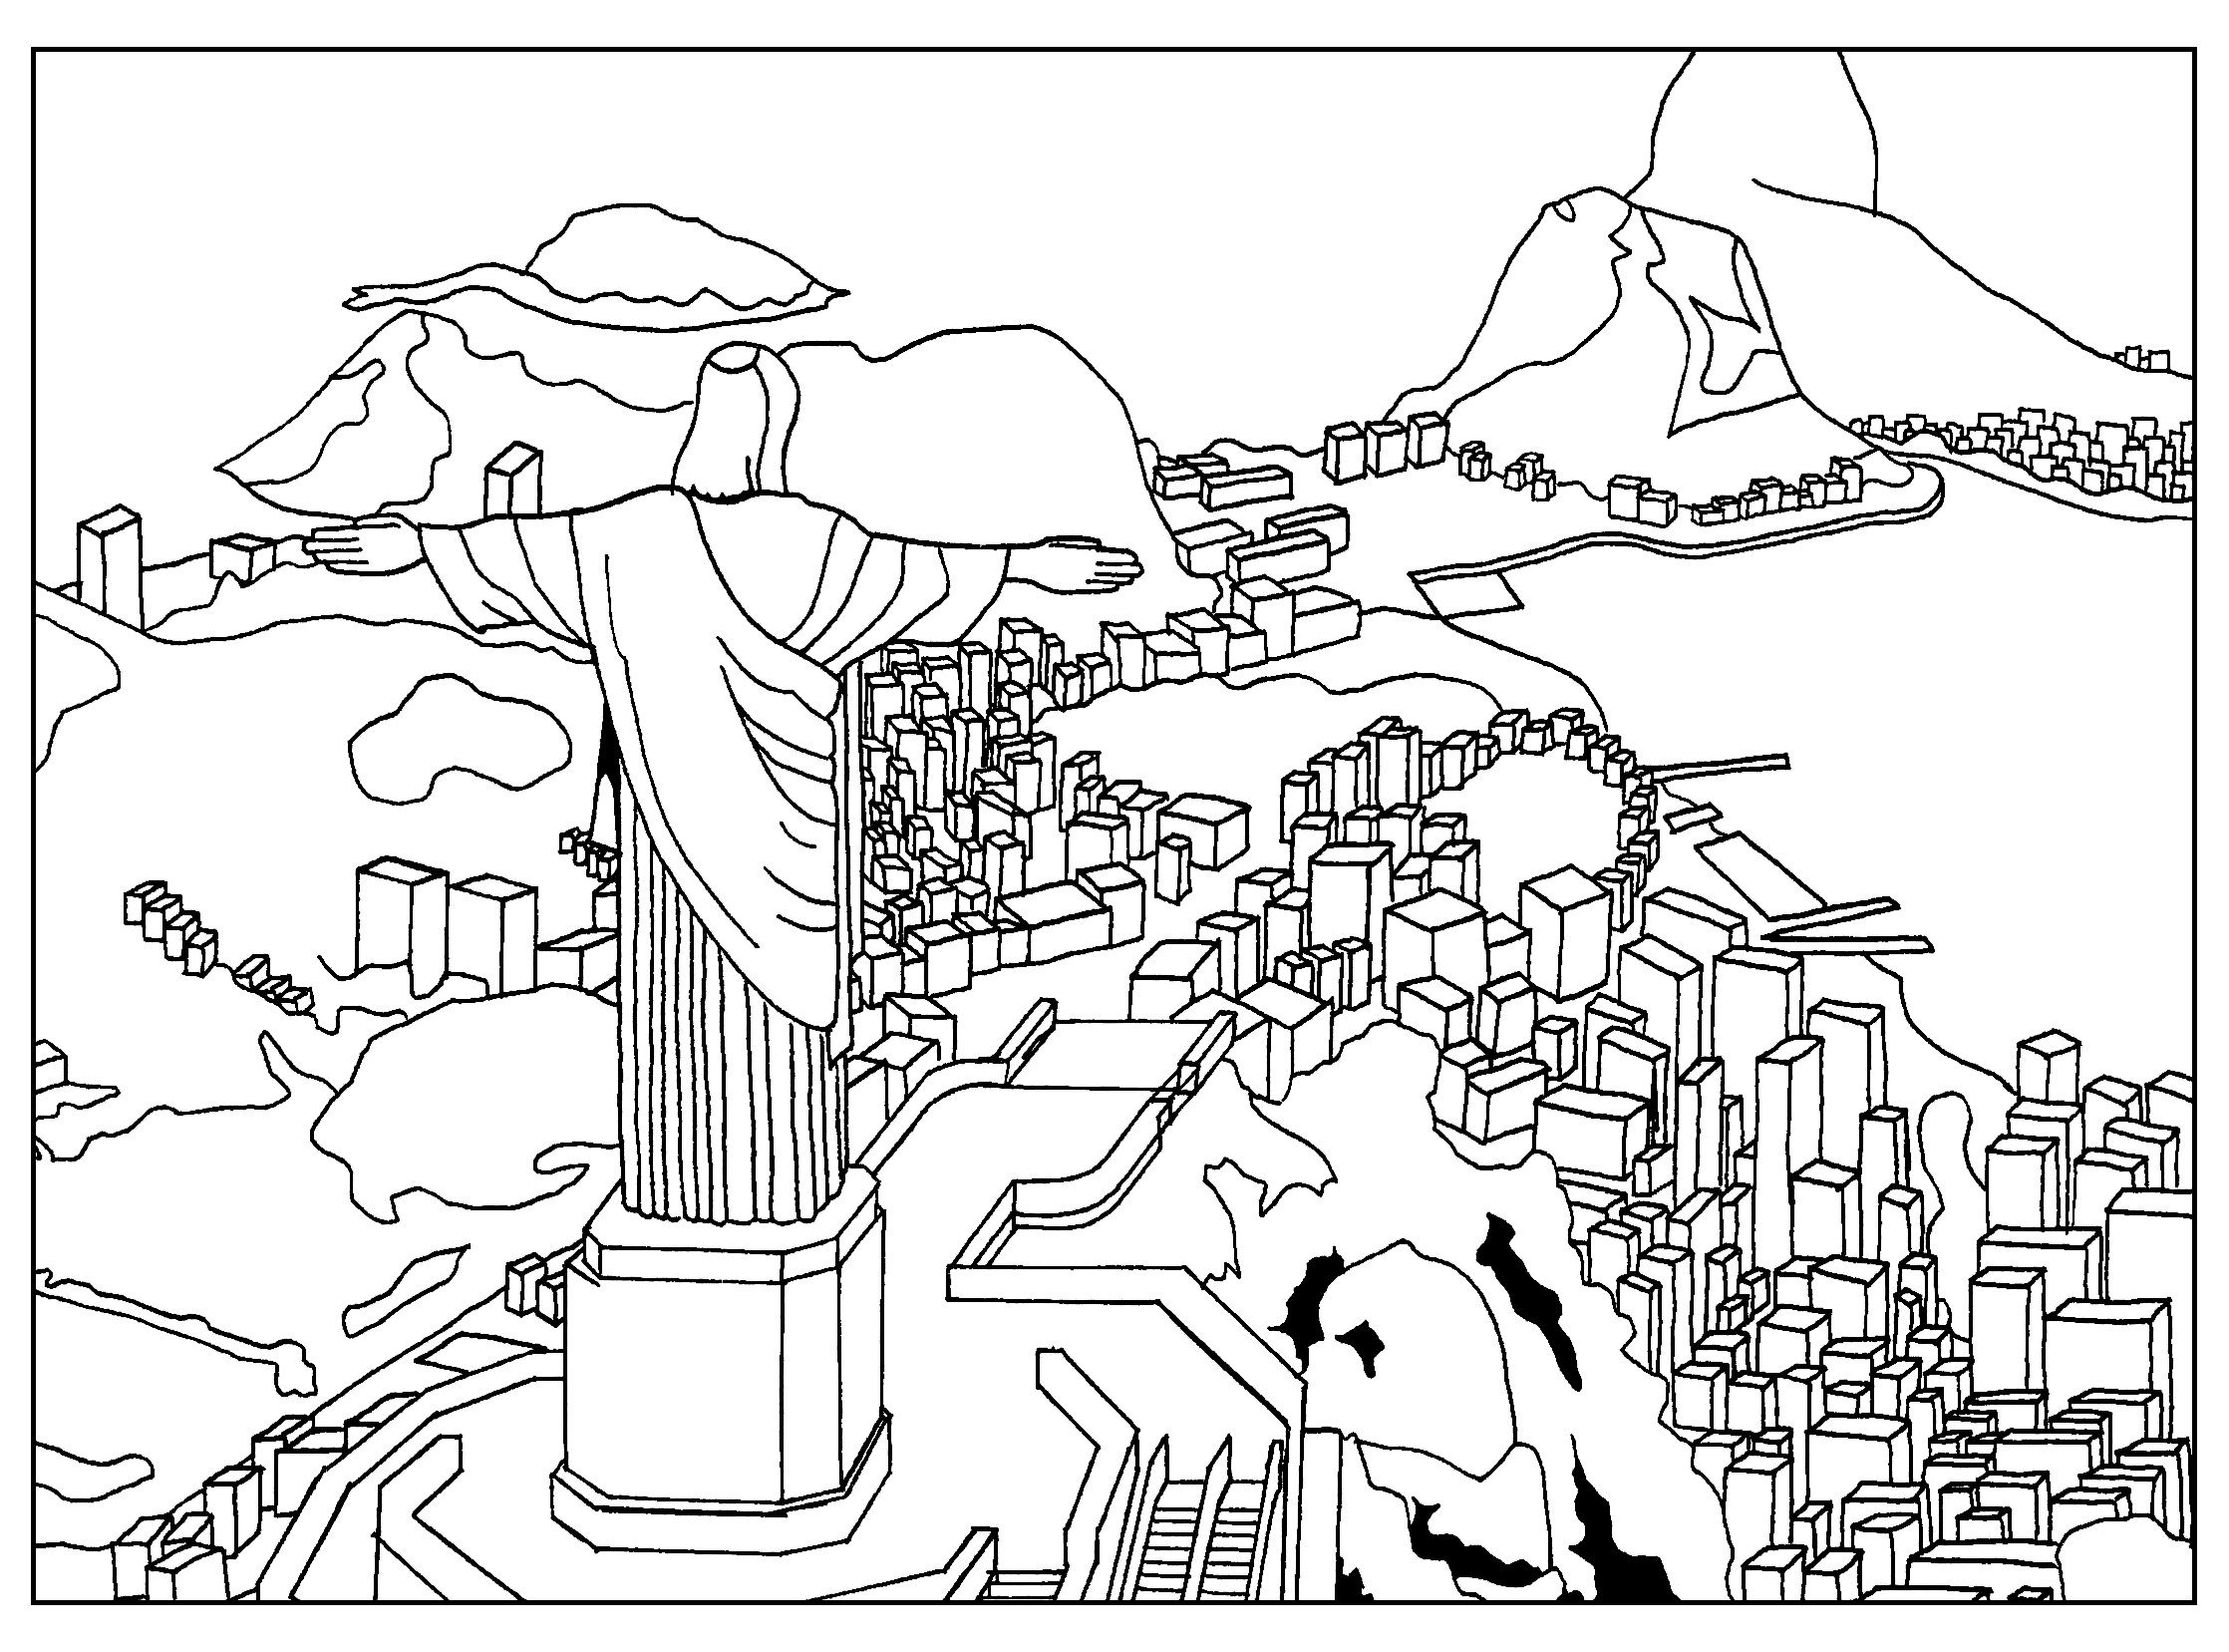 Free printable coloring pages for adults city - Free Coloring Page Coloring Adult Rio De Janeiro Through The